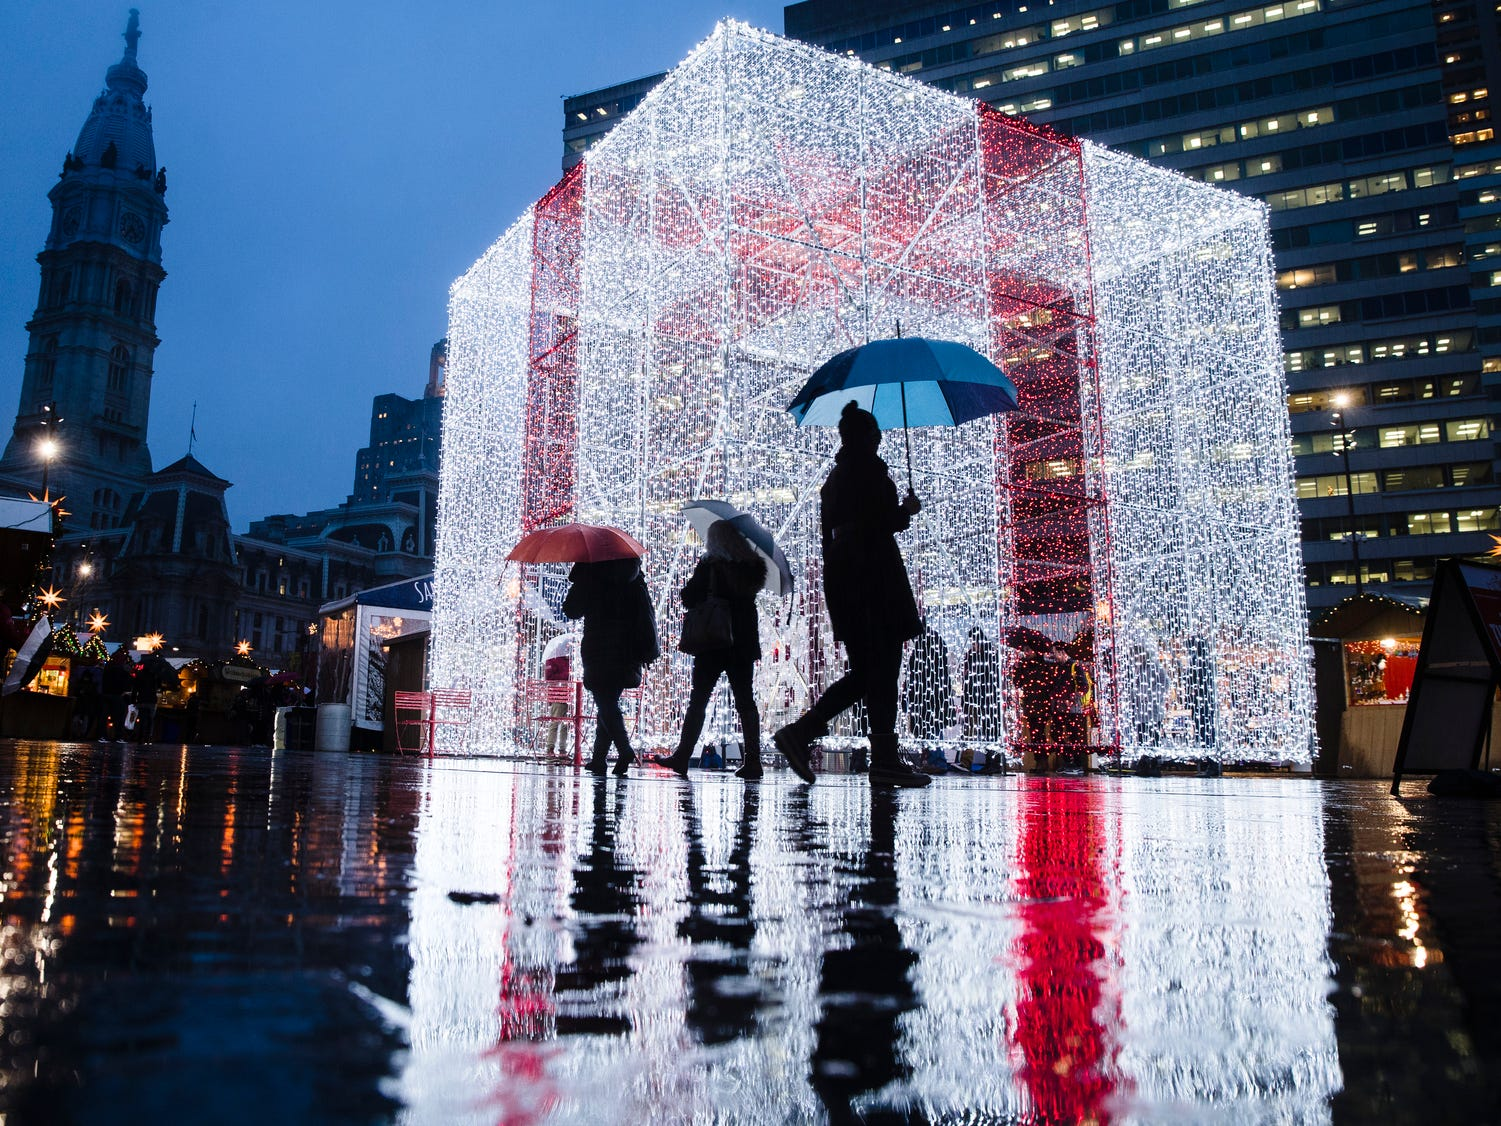 People walk on a rainy evening by The Present in the Christmas Village at John F. Kennedy Plaza, commonly known as Love Park, in Philadelphia, Dec. 20, 2018.